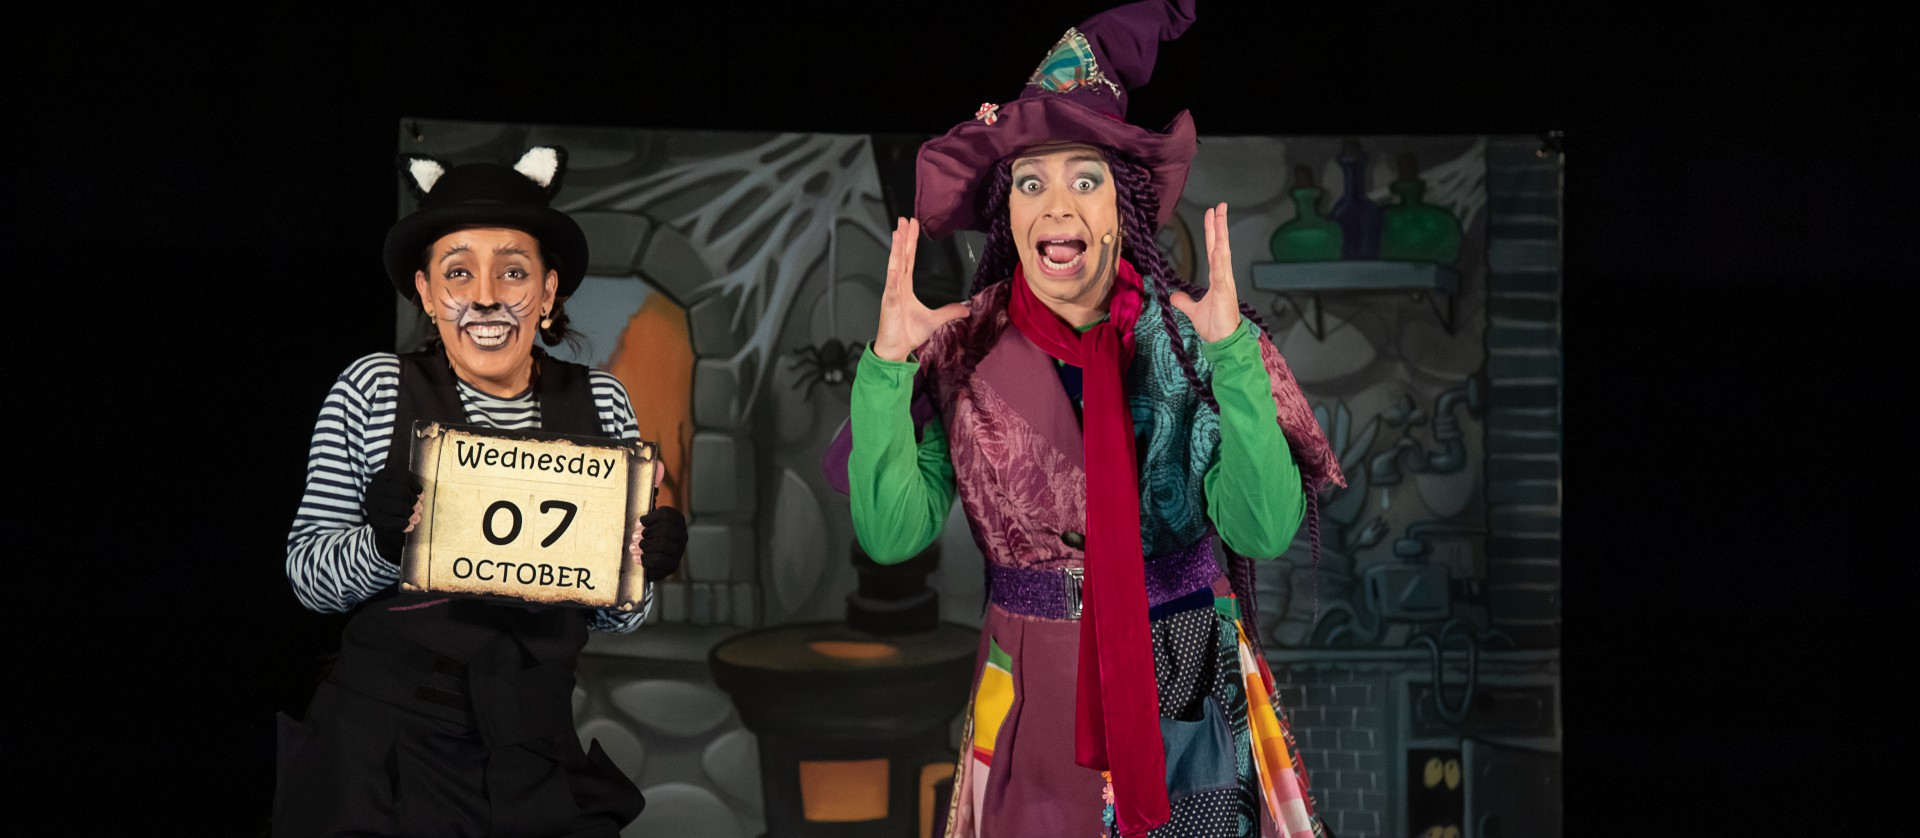 Wanda the witch show image